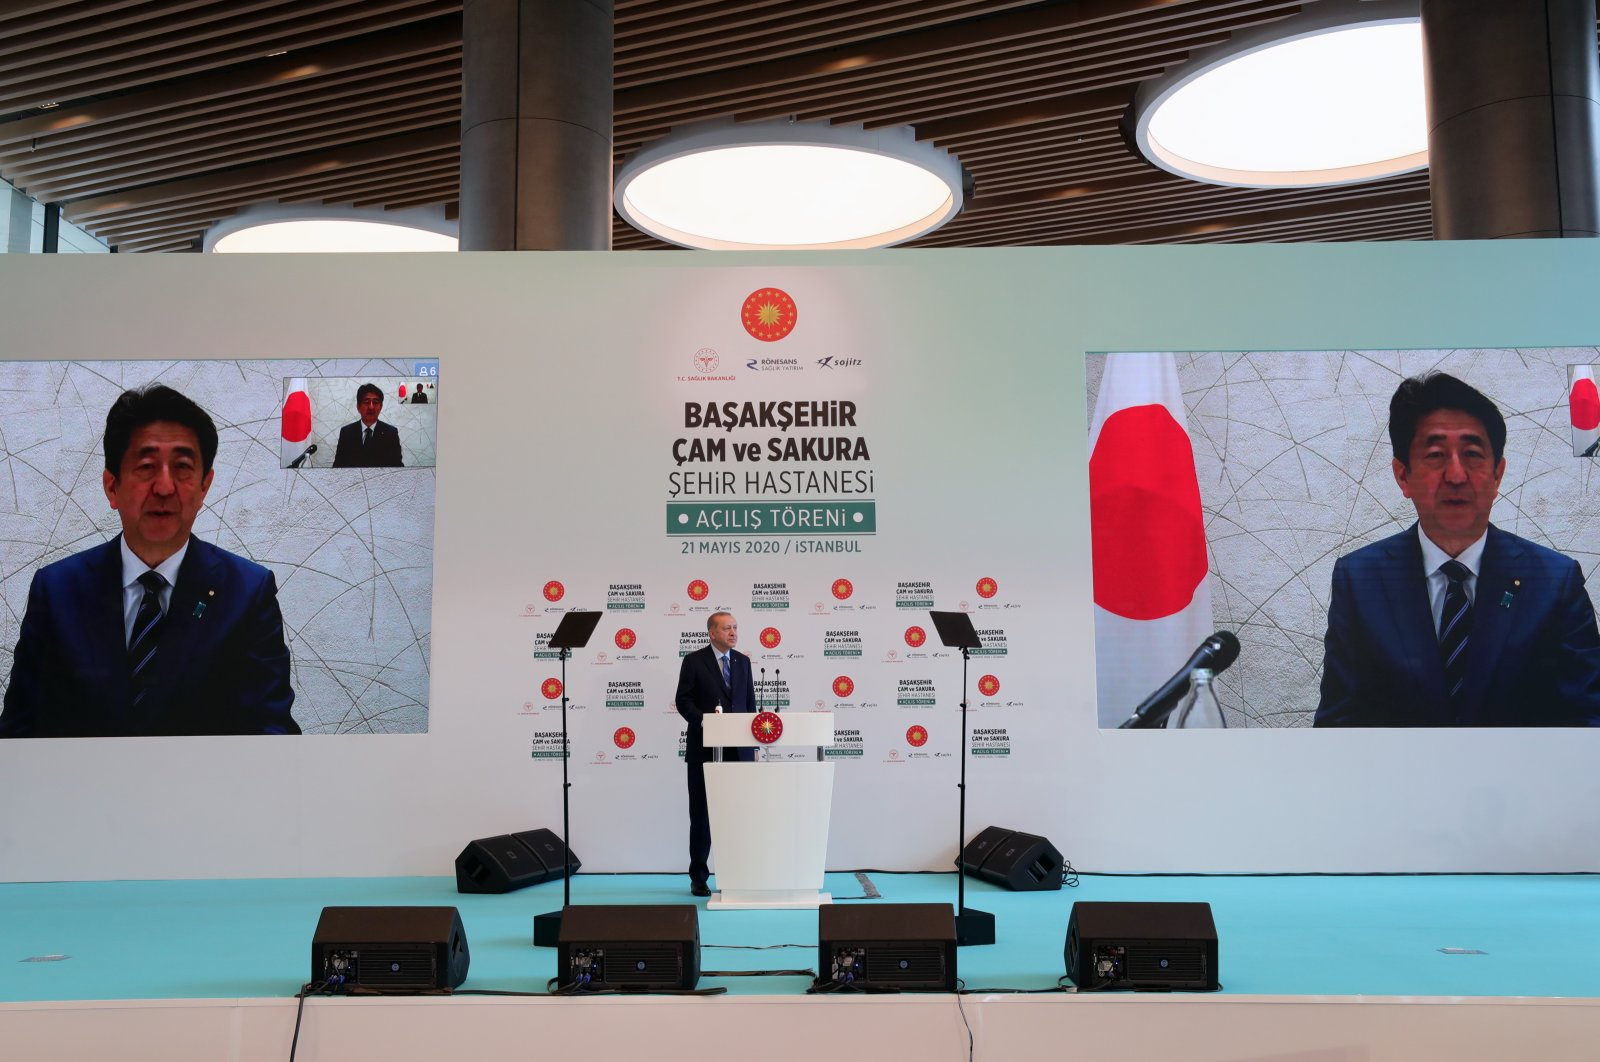 Turkish President Recep Tayyip Erdoğan speaks to Japanese Prime Minister Shinzo Abe in a video call during the opening ceremony of the Başakşehir Pine and Sakura City Hospital, Istanbul, Turkey, May 21, 2020. (AA Photo)